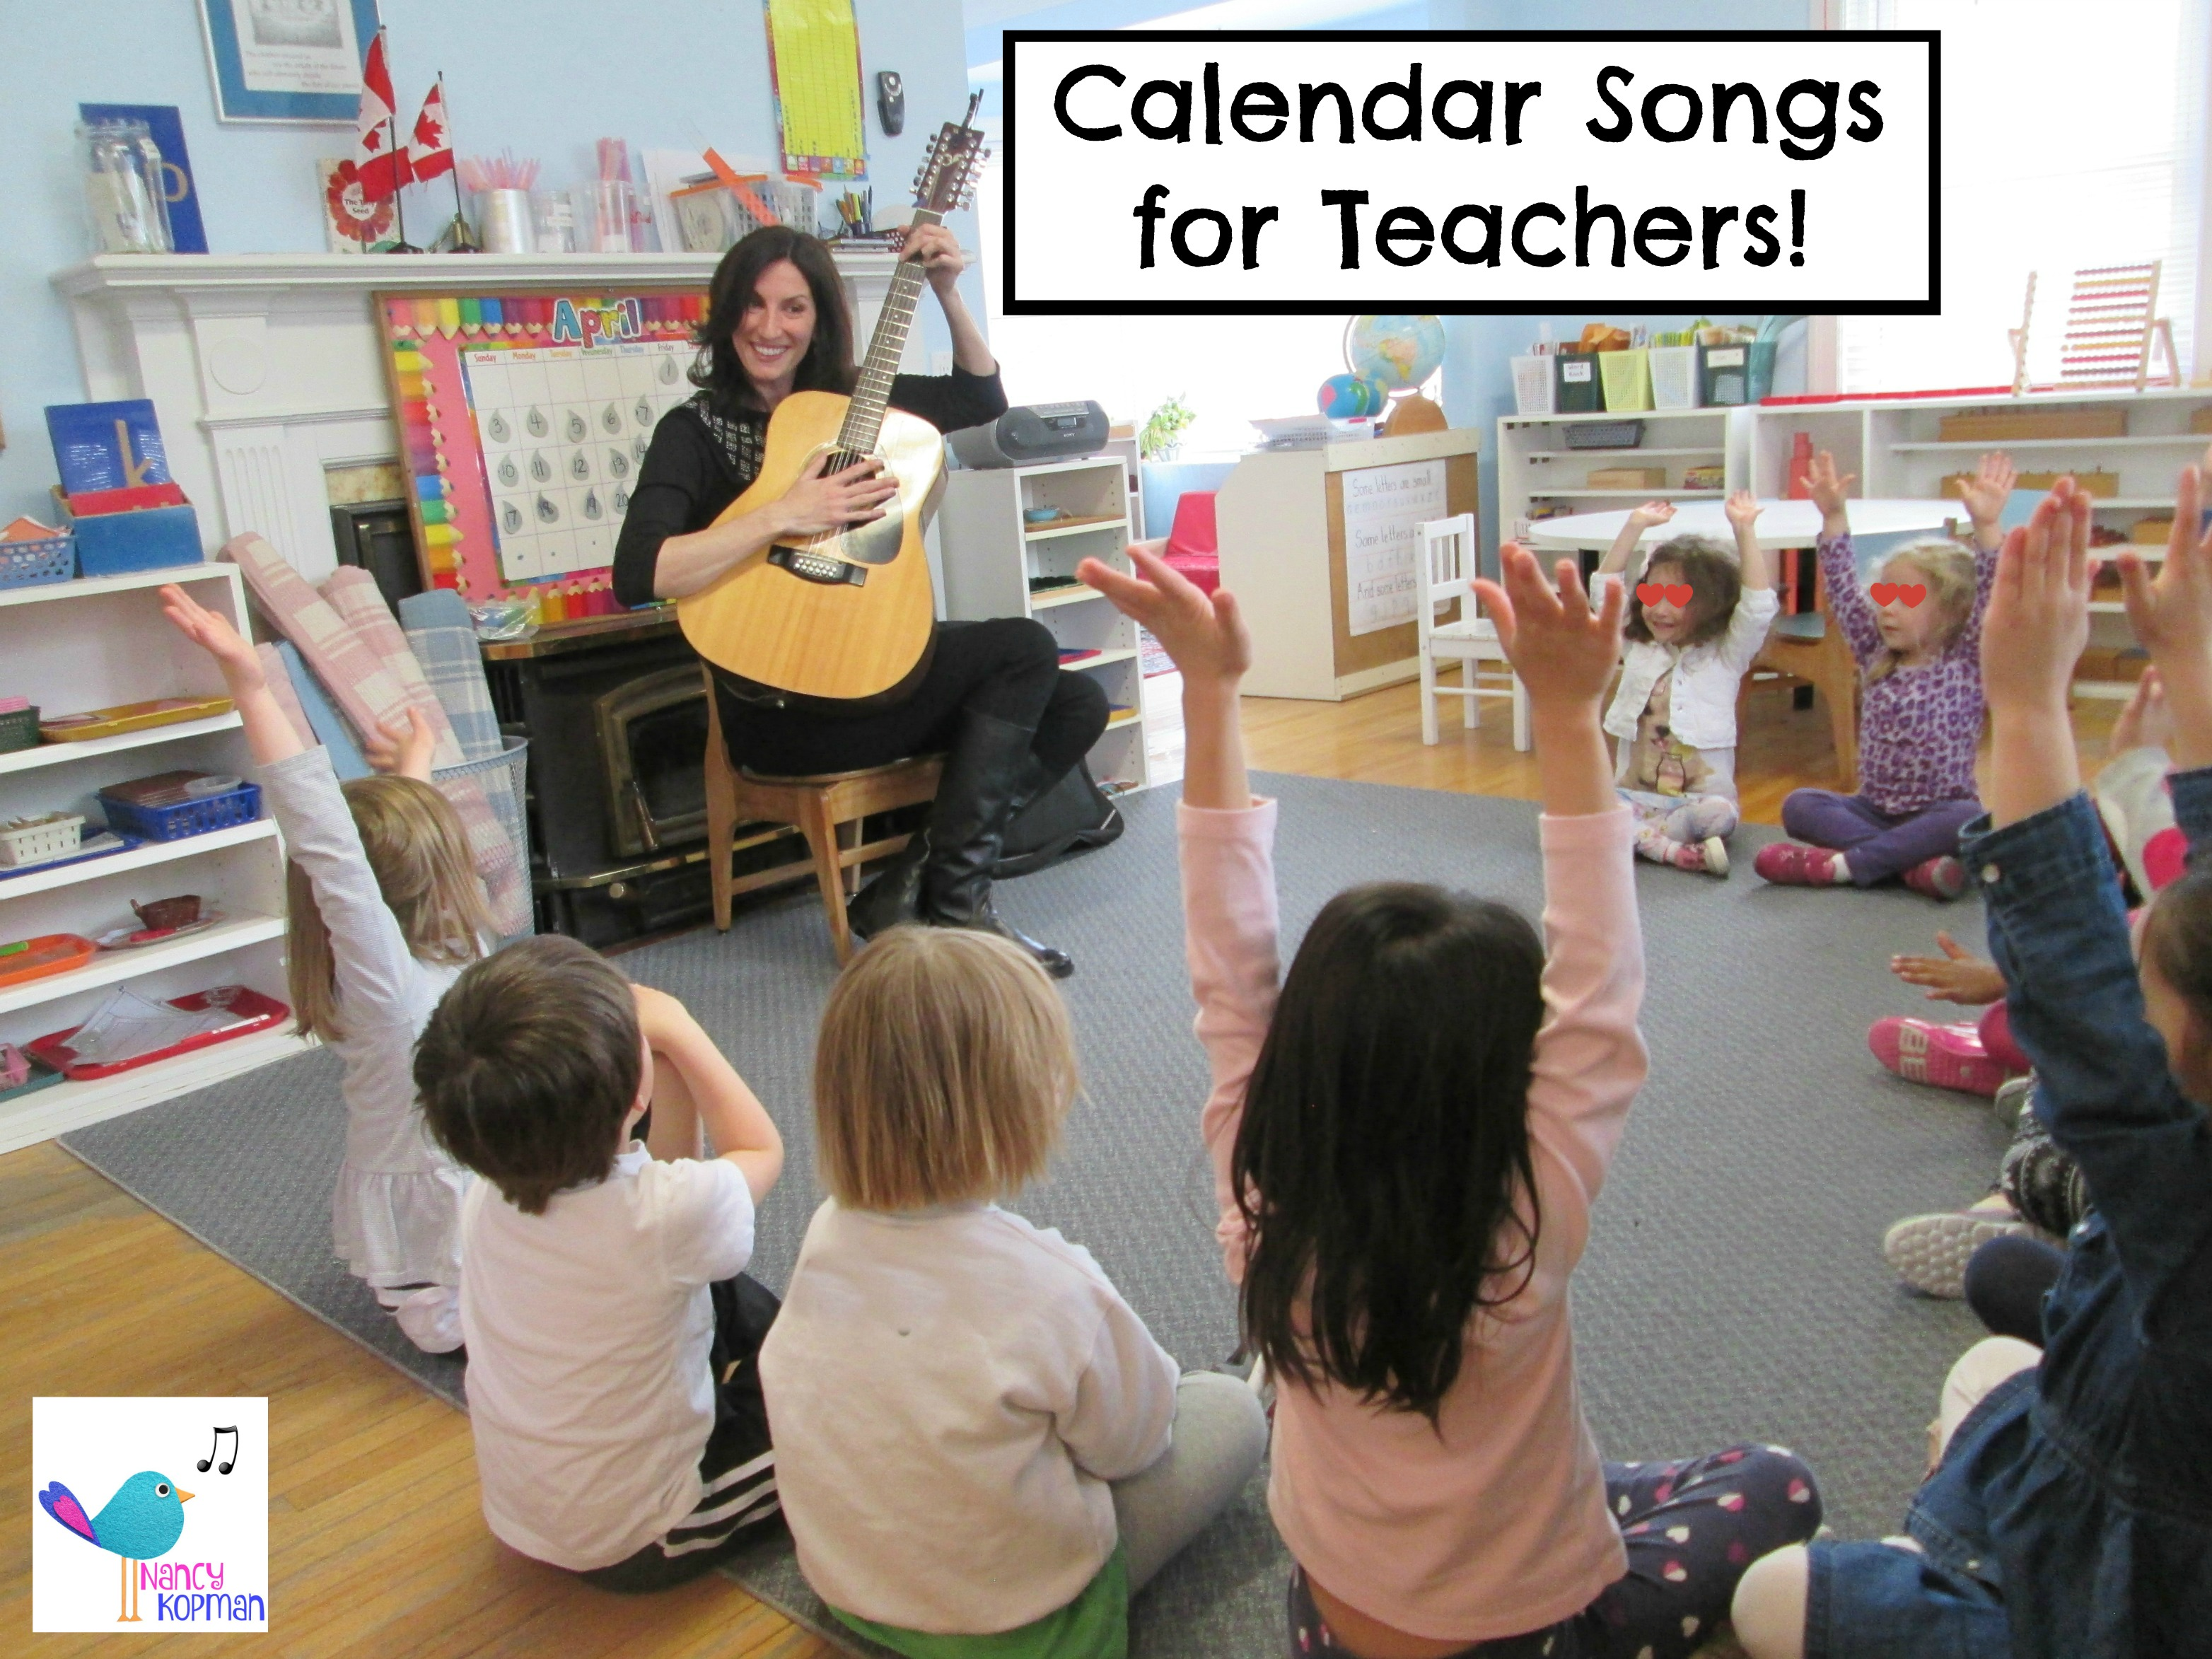 Calendar songs for teachers post.jpg